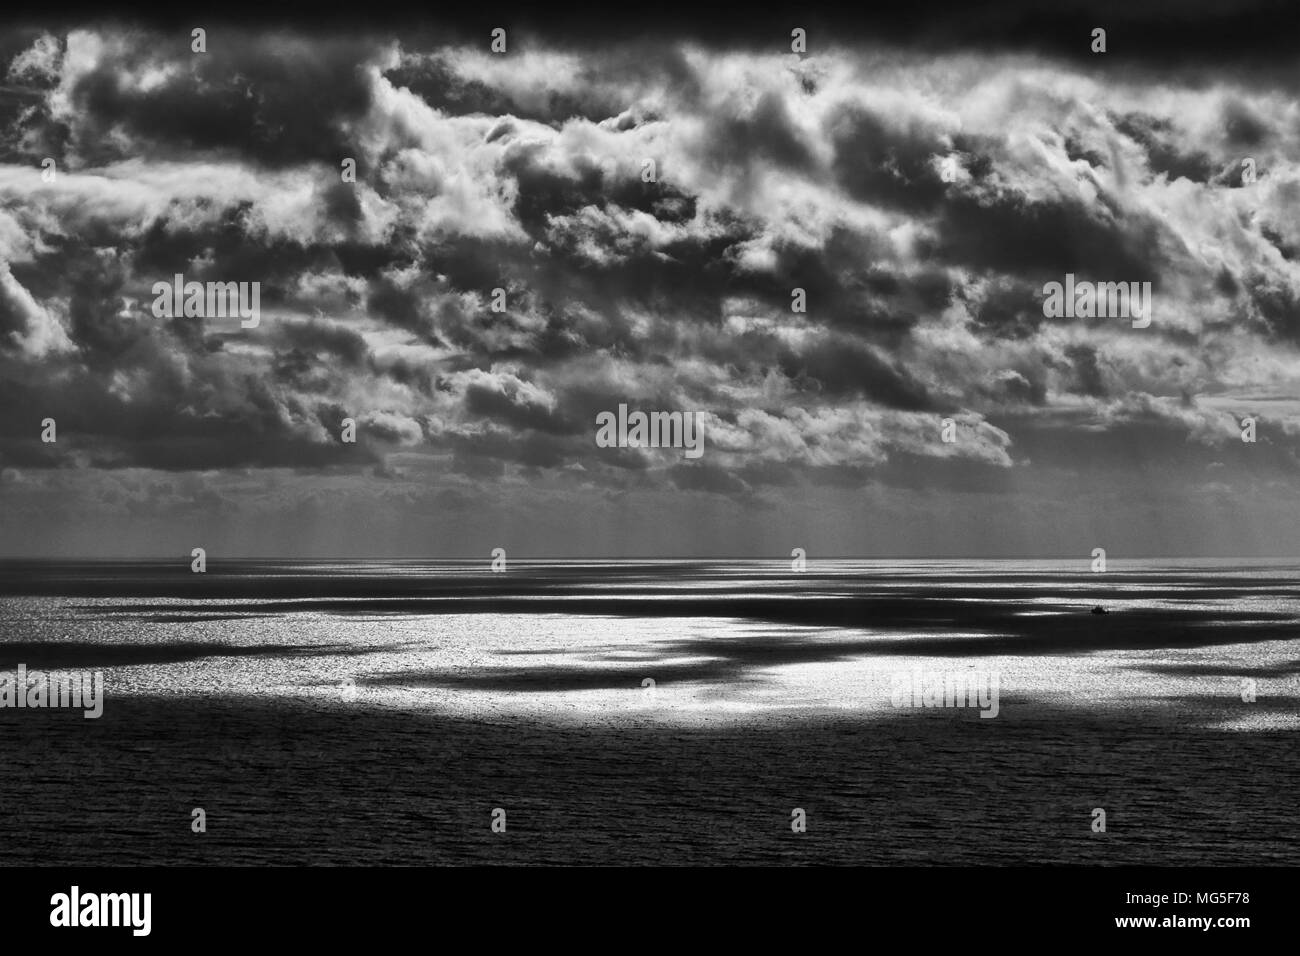 A simple seascape in black and white taken off the Dorset coast. - Stock Image